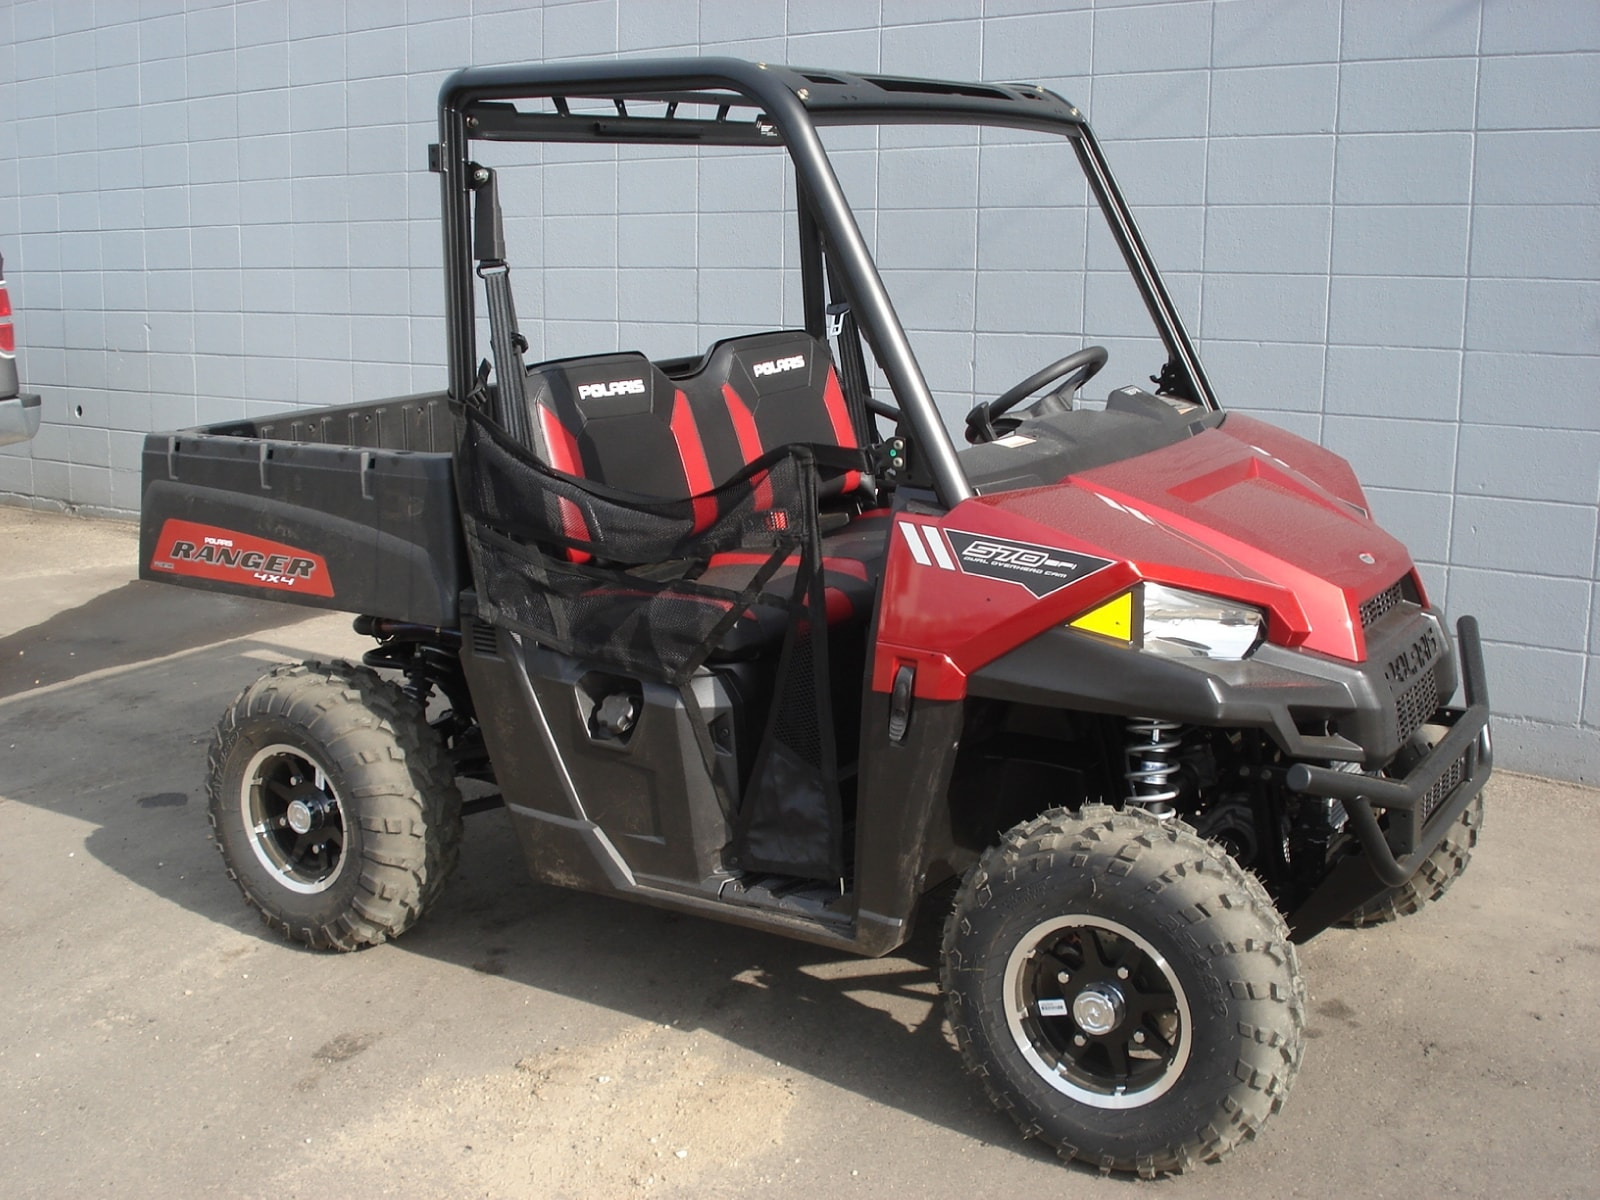 New 2016 Polaris Ranger 570 Eps For Sale